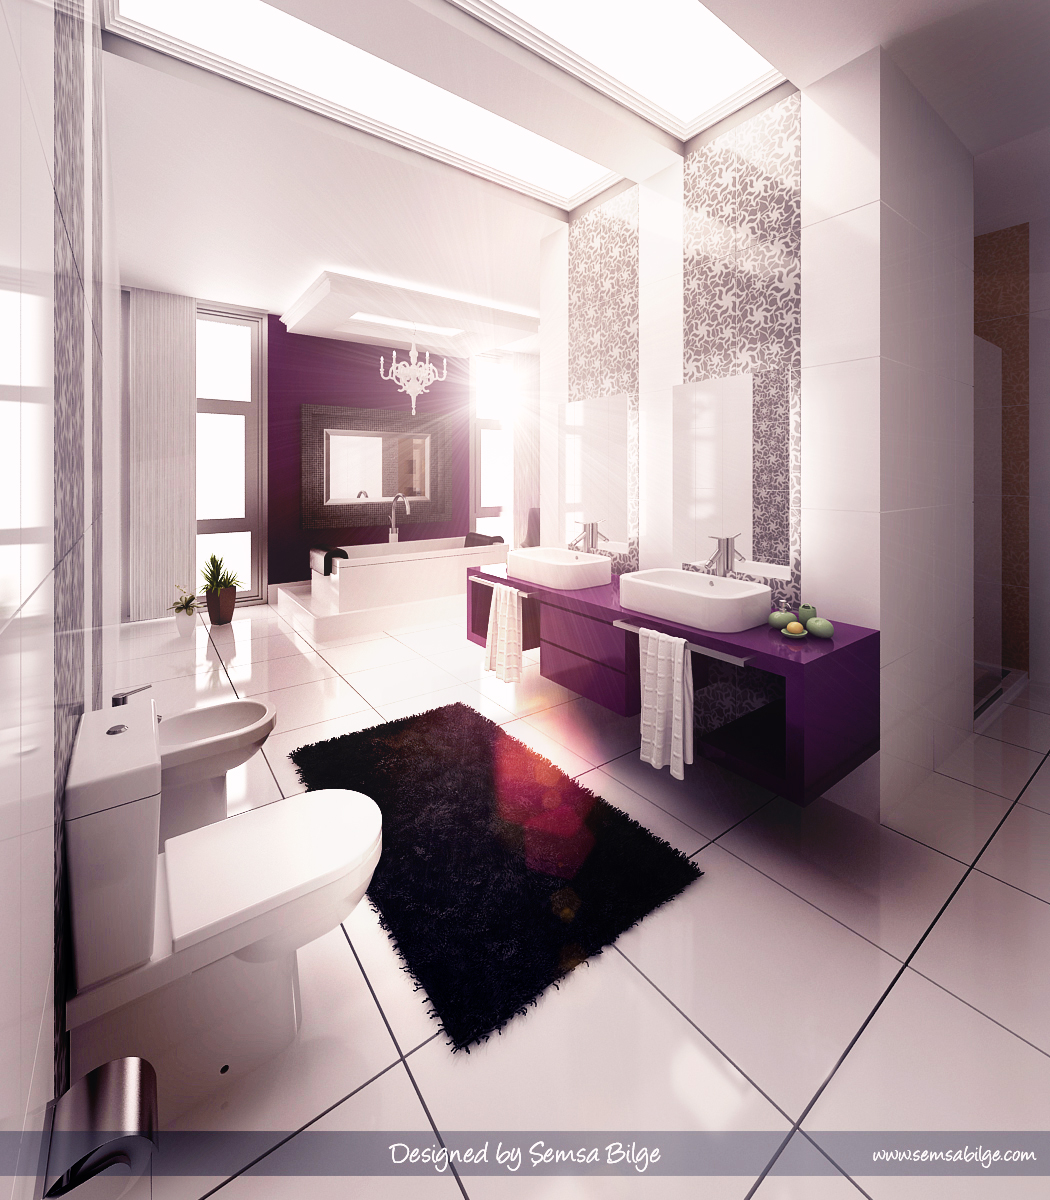 Bathroom Ideas: Inspiring Bathroom Designs For The Soul